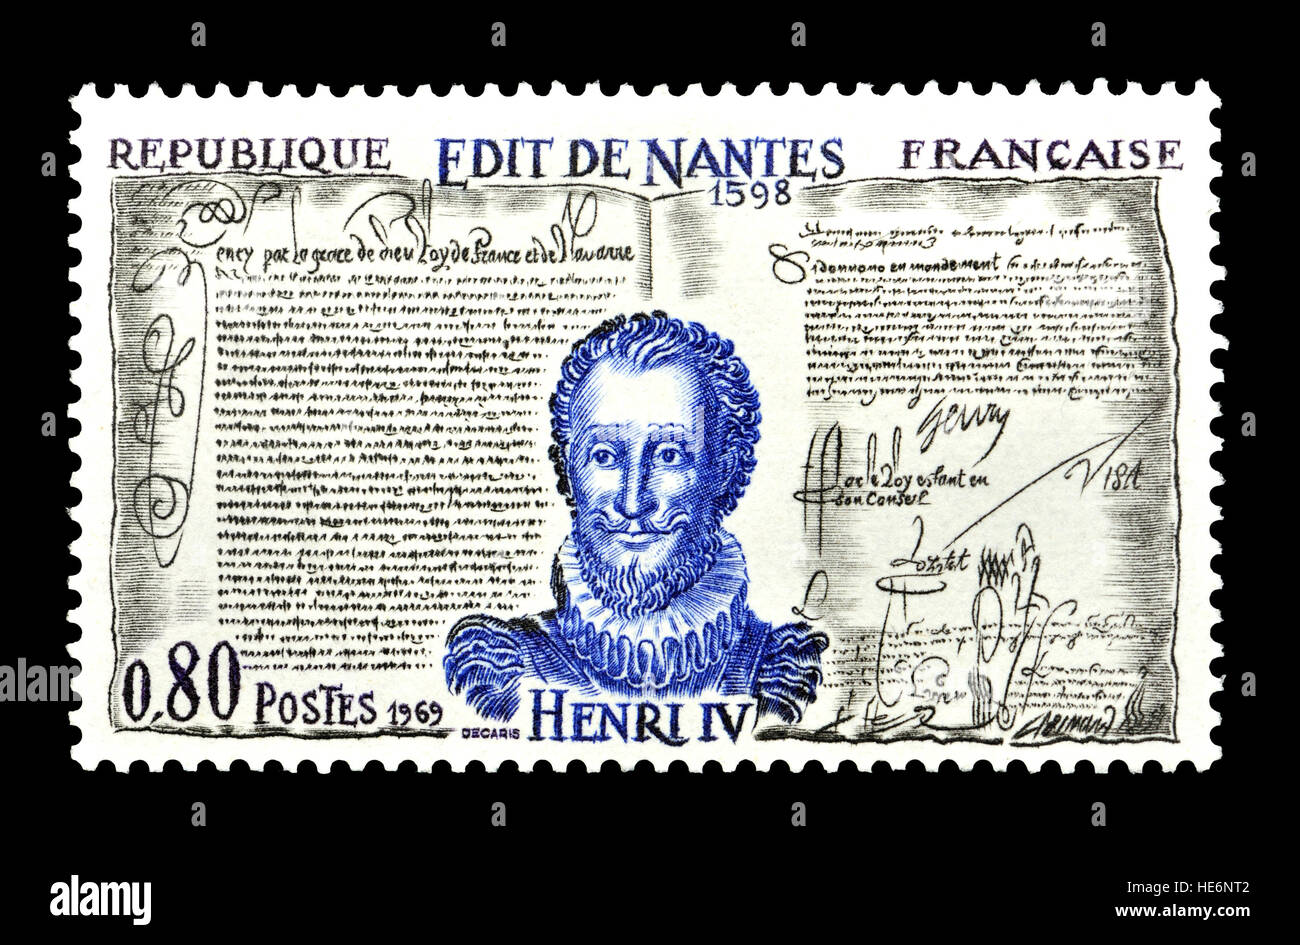 Protestantism in 16th to 18th century france and the edict of nantes